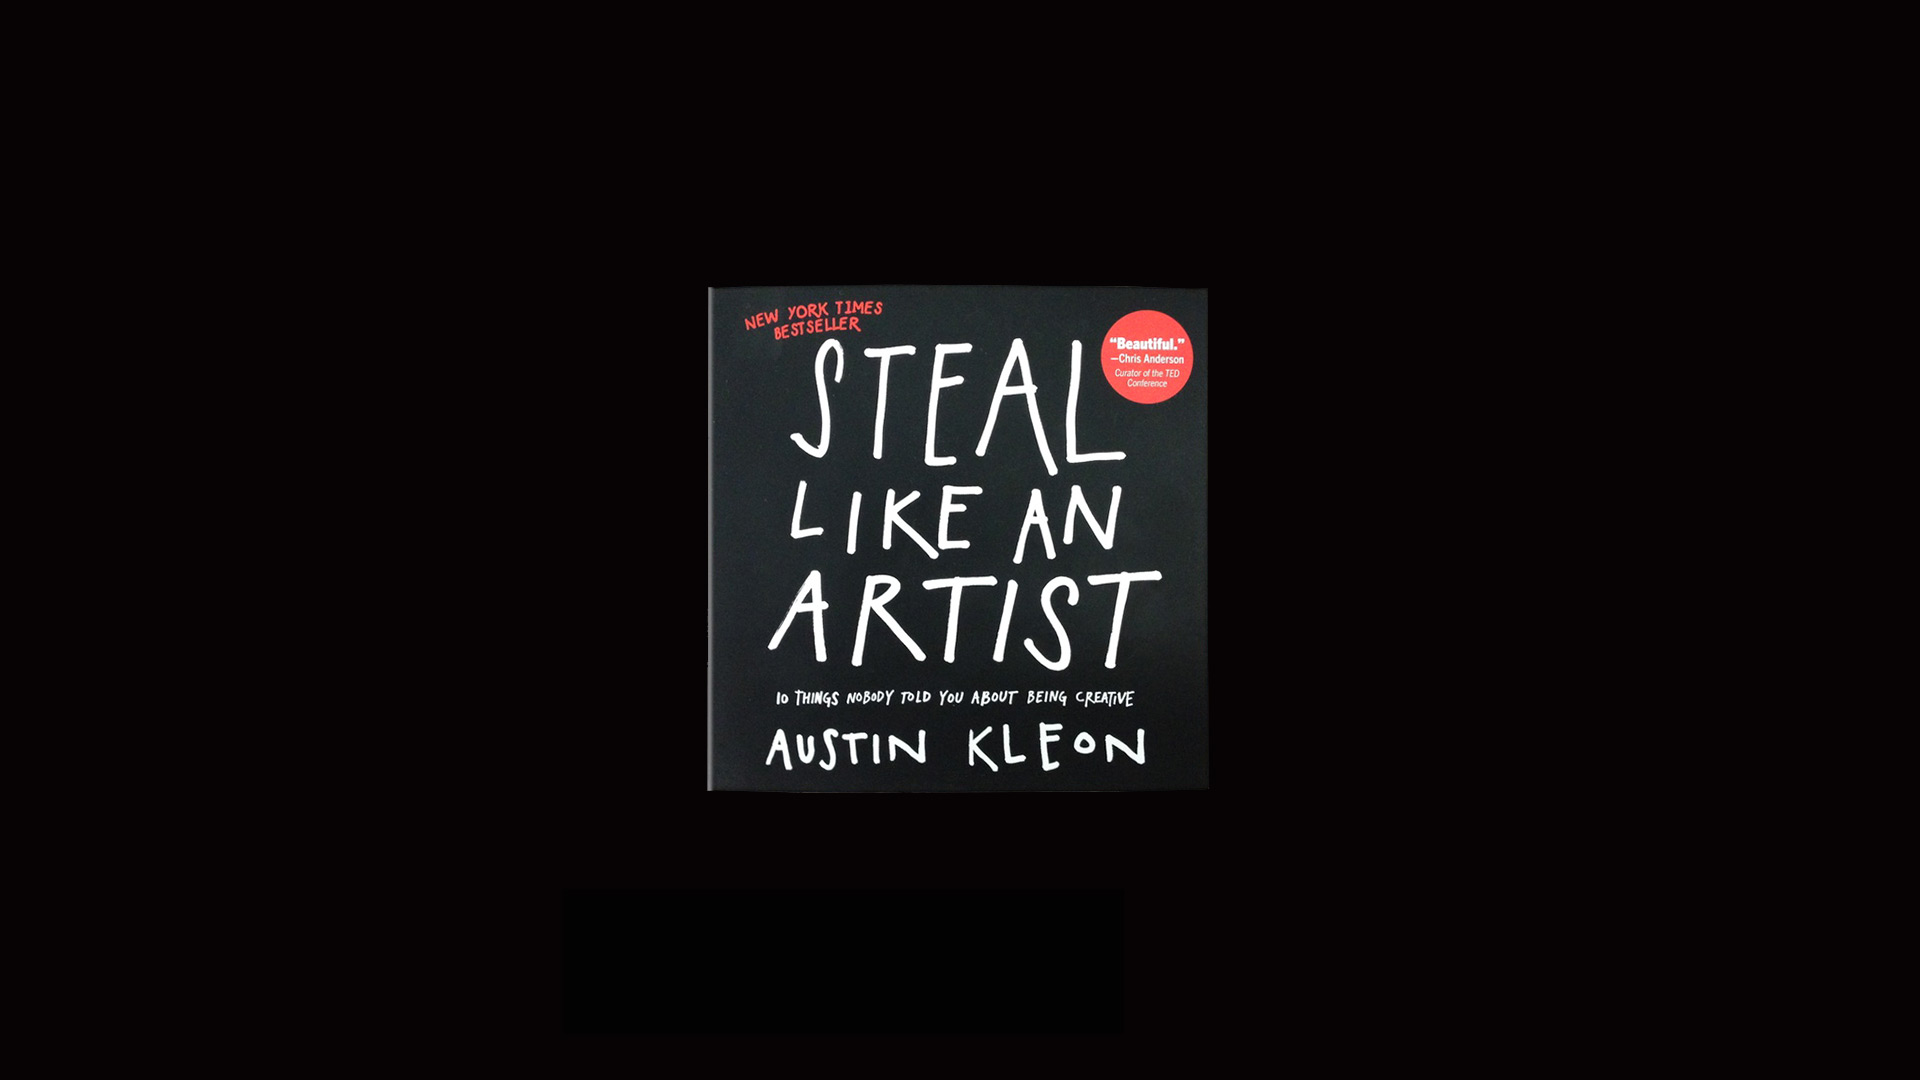 Inspirational Design Books - Steal Like an Artist